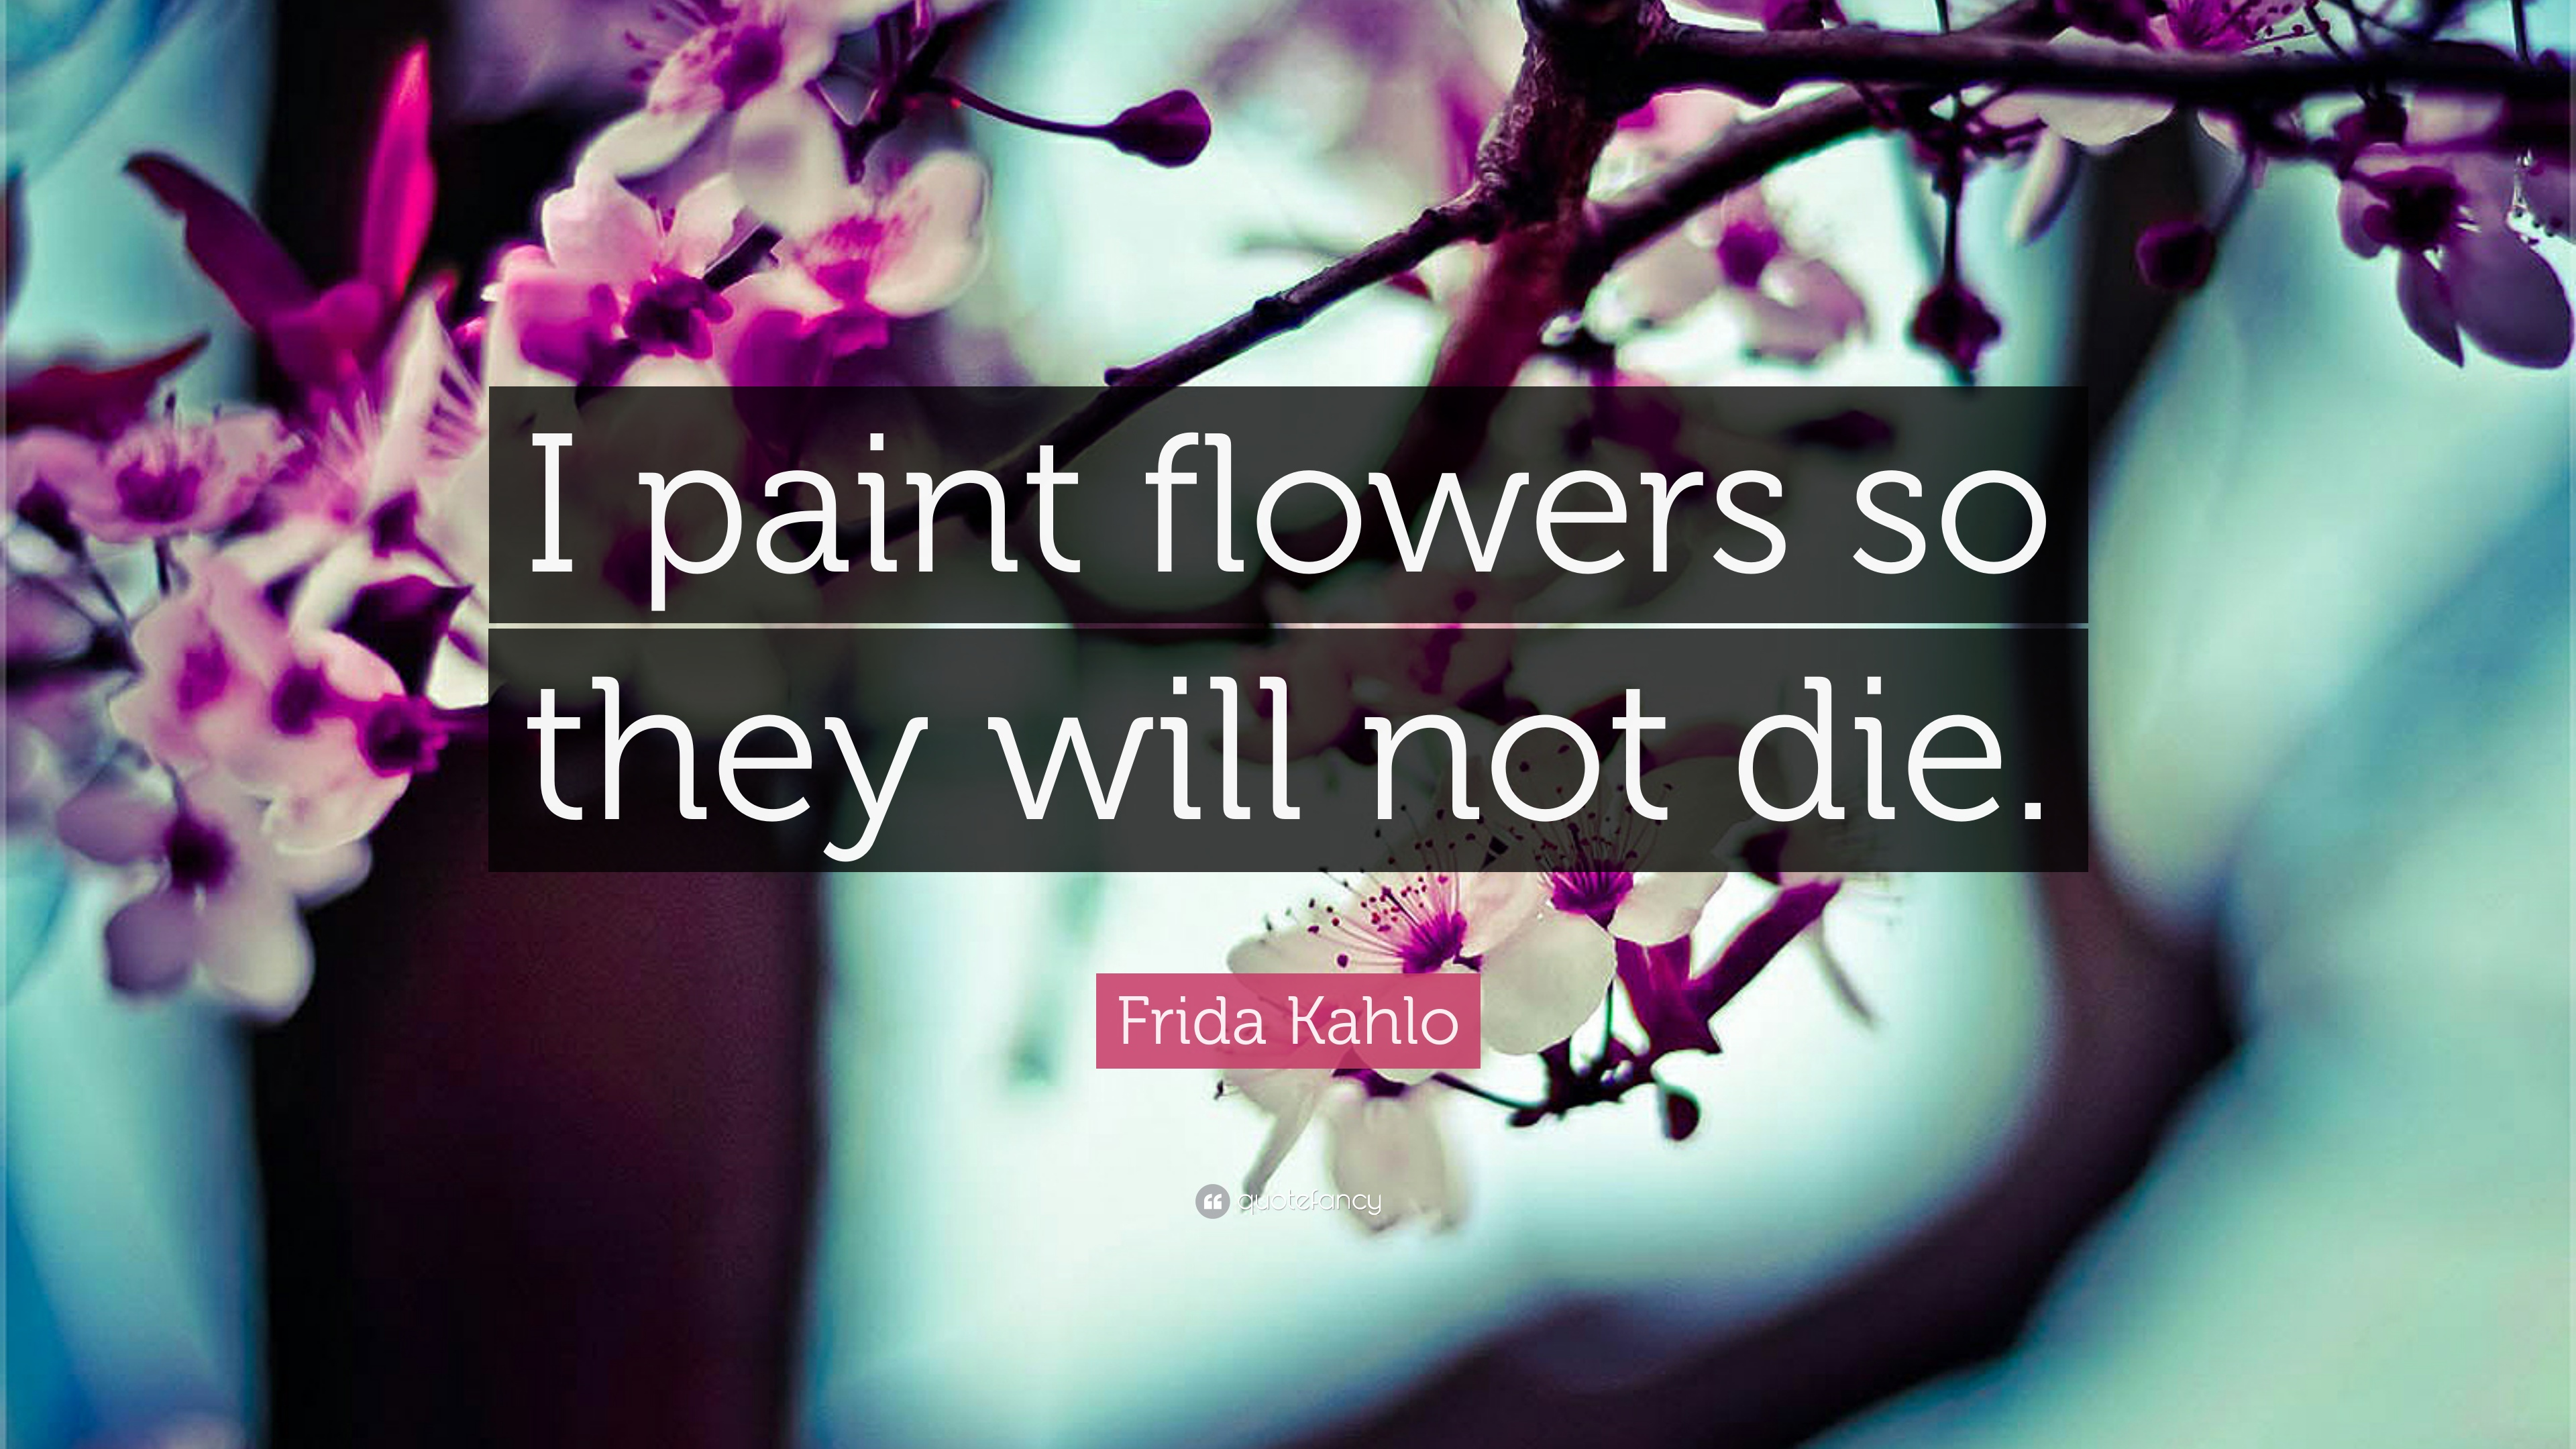 Quotes On Flowers And Love Flower Quotes 40 Wallpapers  Quotefancy